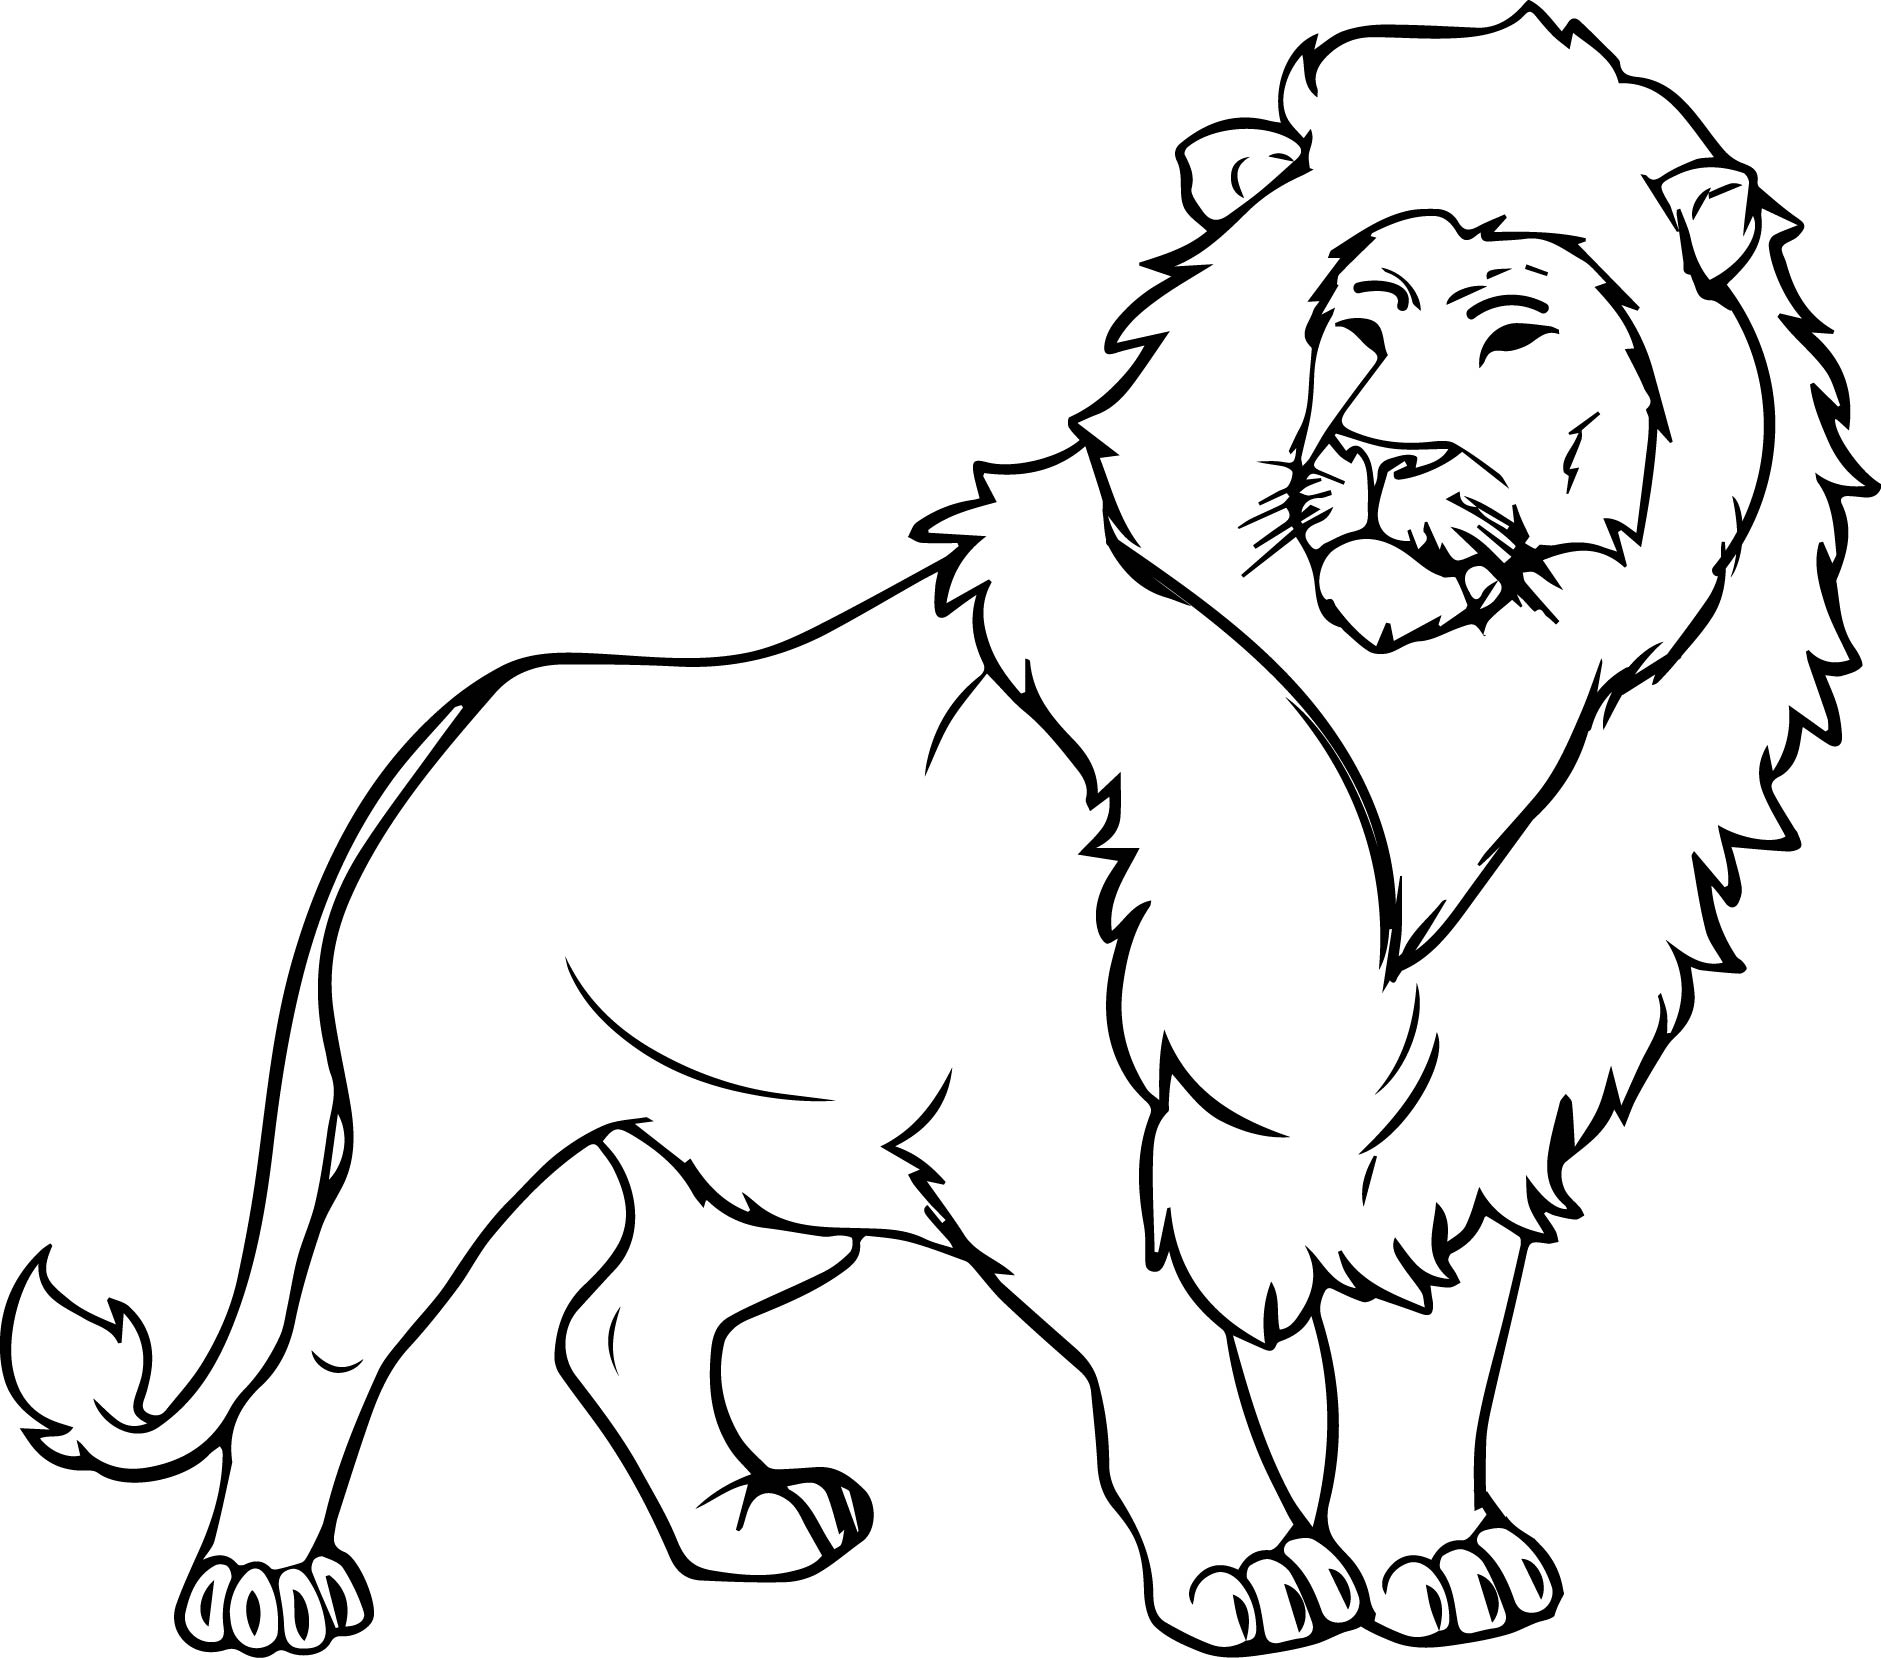 colouring pictures of lions fun with lion coloring pages colouring pictures lions of